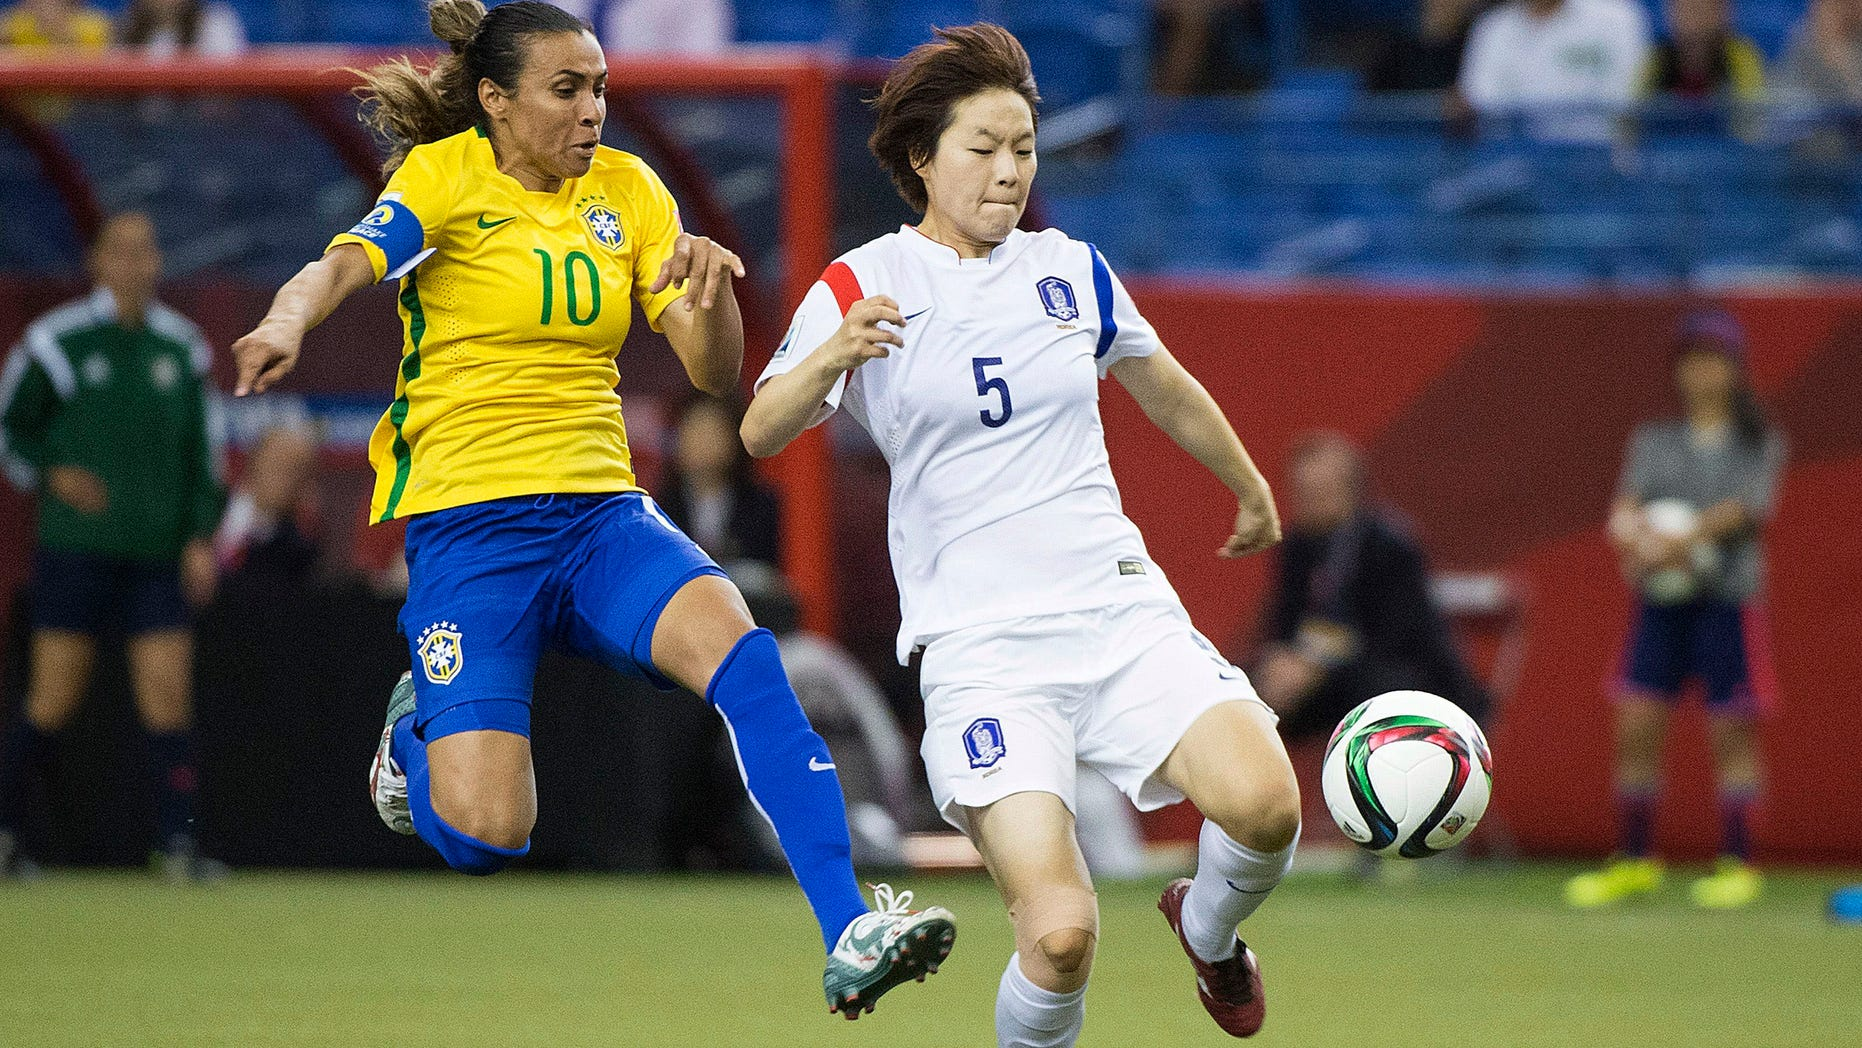 Brazil's Marta (10) challenges South Korea's Kim Doyeon during the second half of a FIFA Women's World Cup soccer match Tuesday, June 9, 2015, in Montreal, Canada. (Graham Hughes/The Canadian Press via AP)